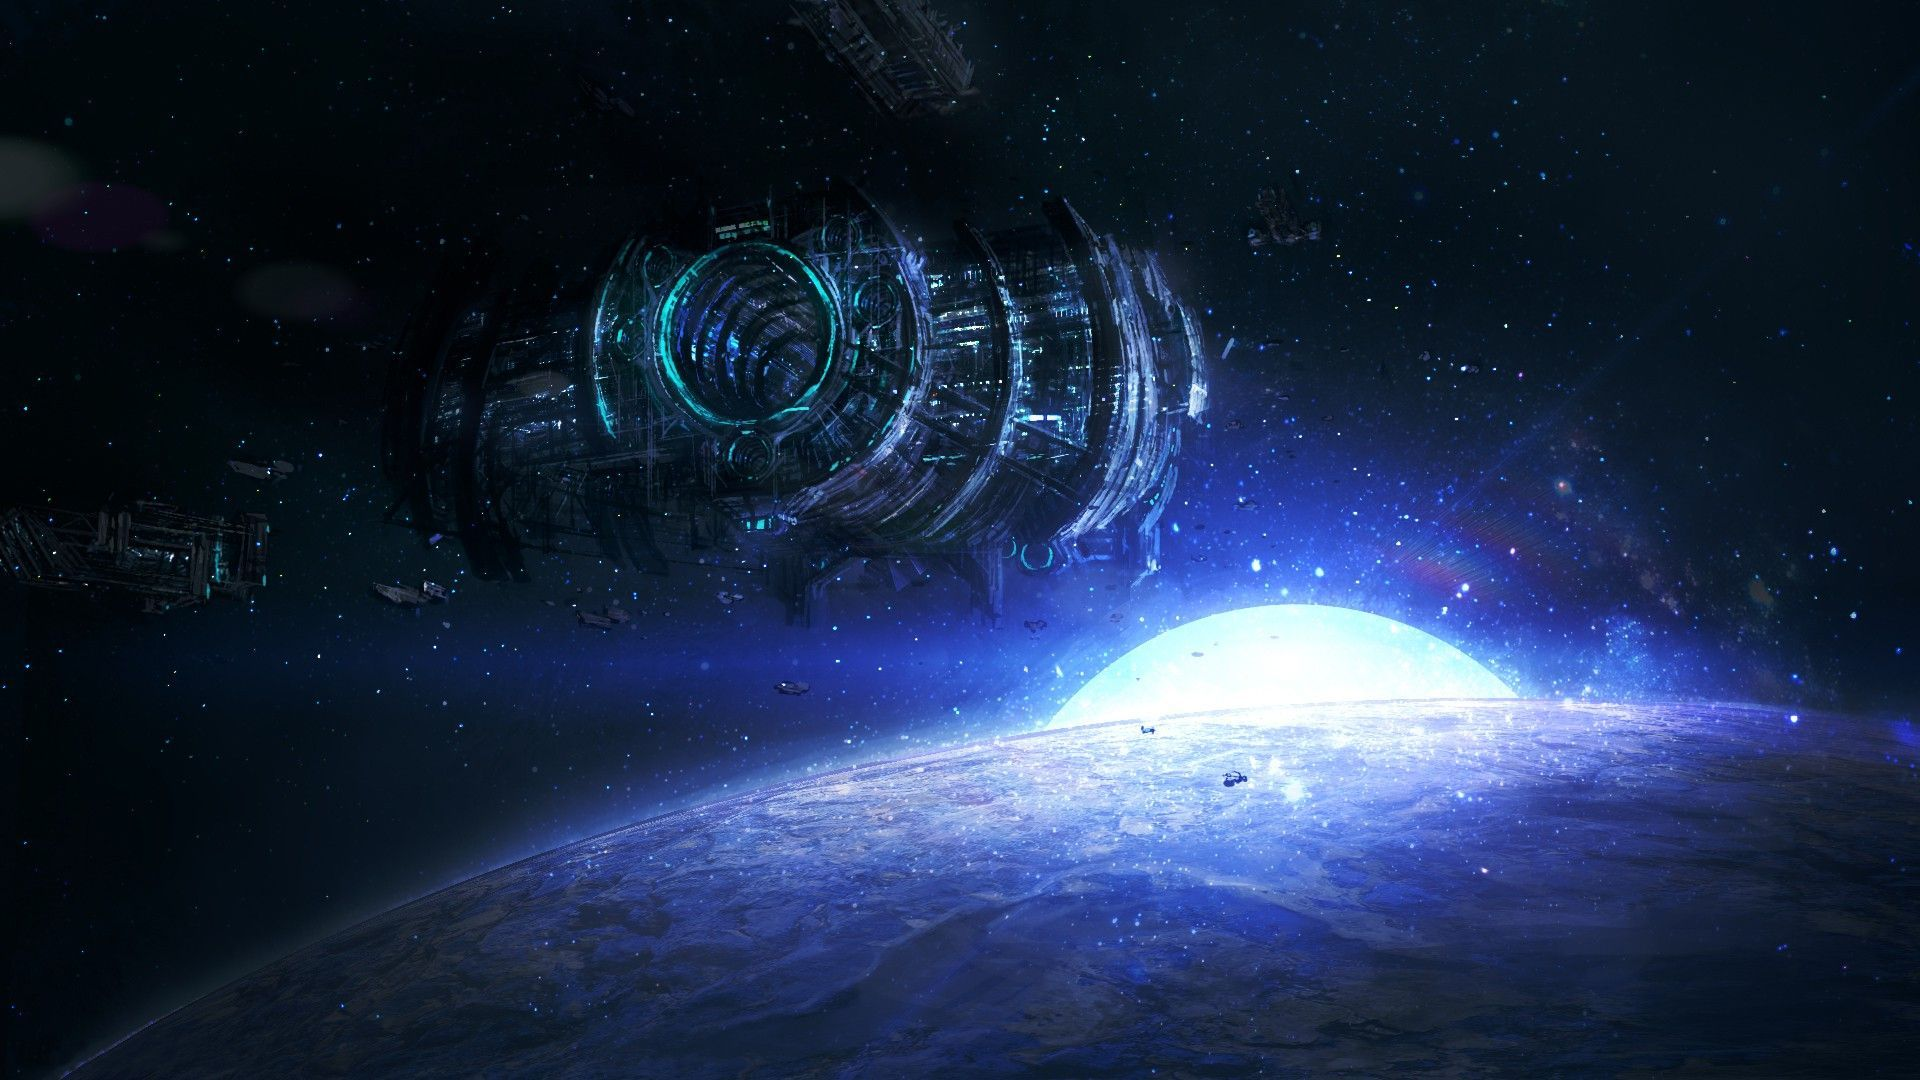 Sci fi space station backgrounds pics about space for Sci fi background